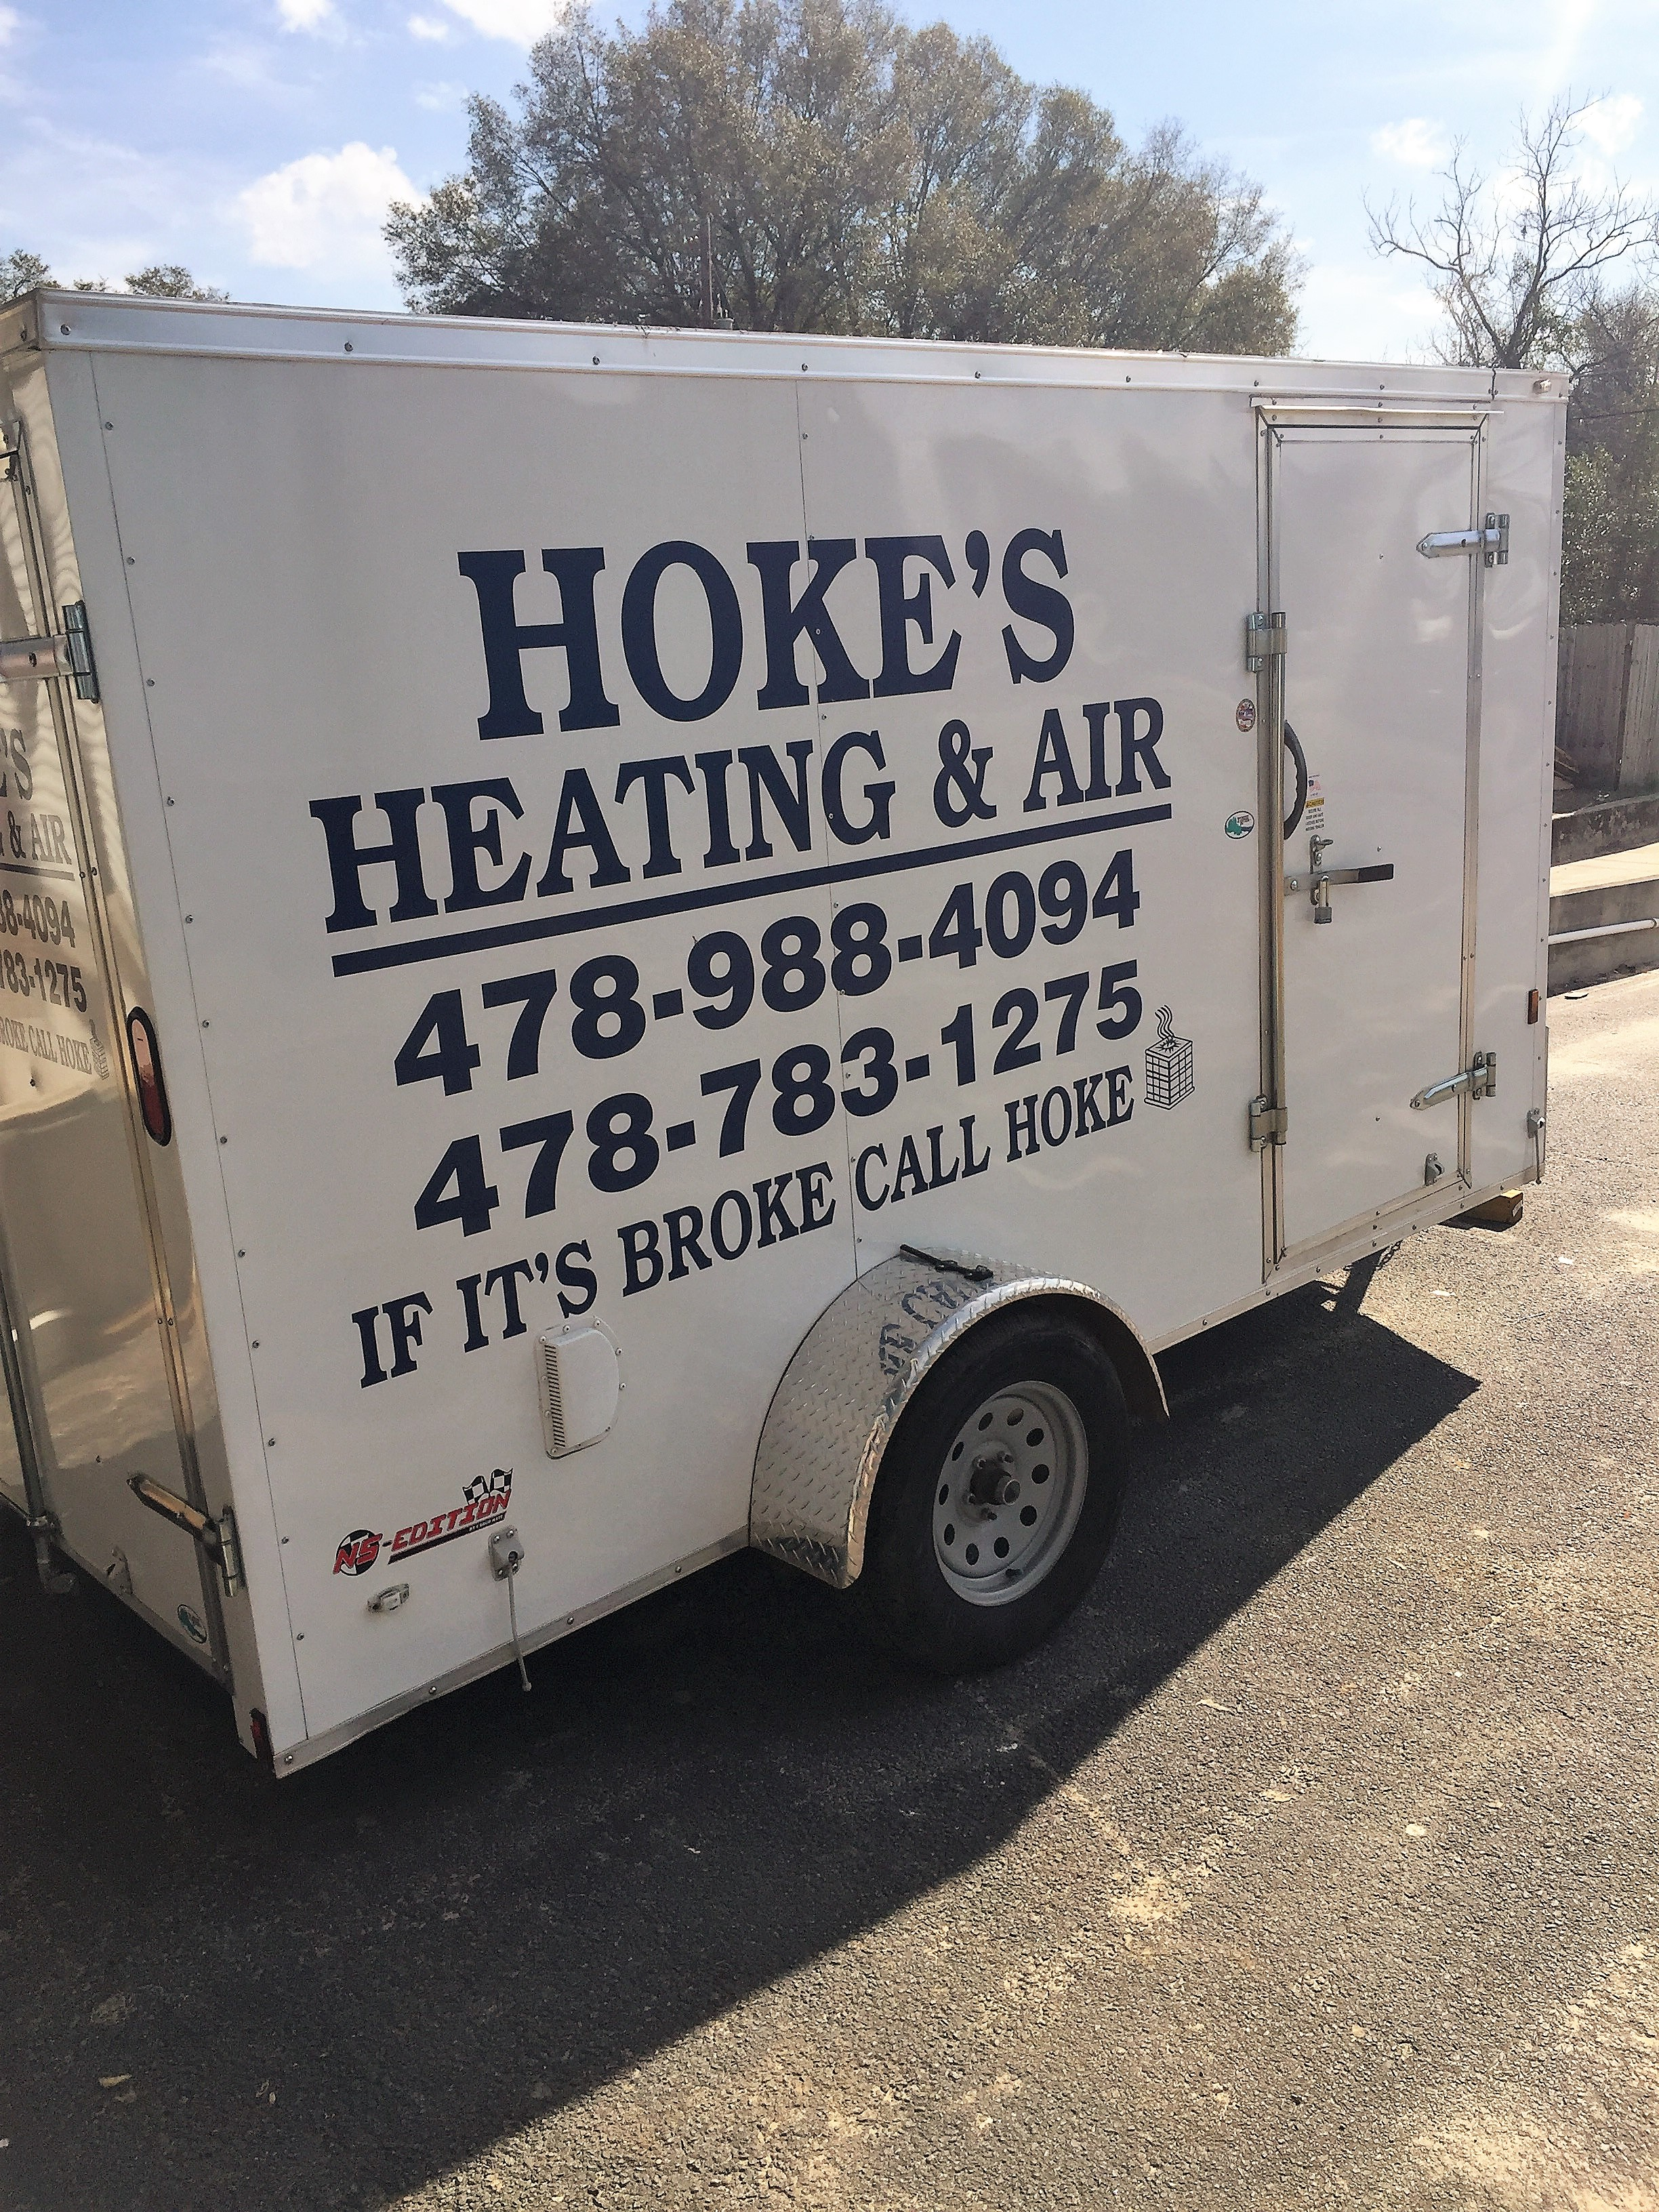 Hoke's Heating and Air company trailer